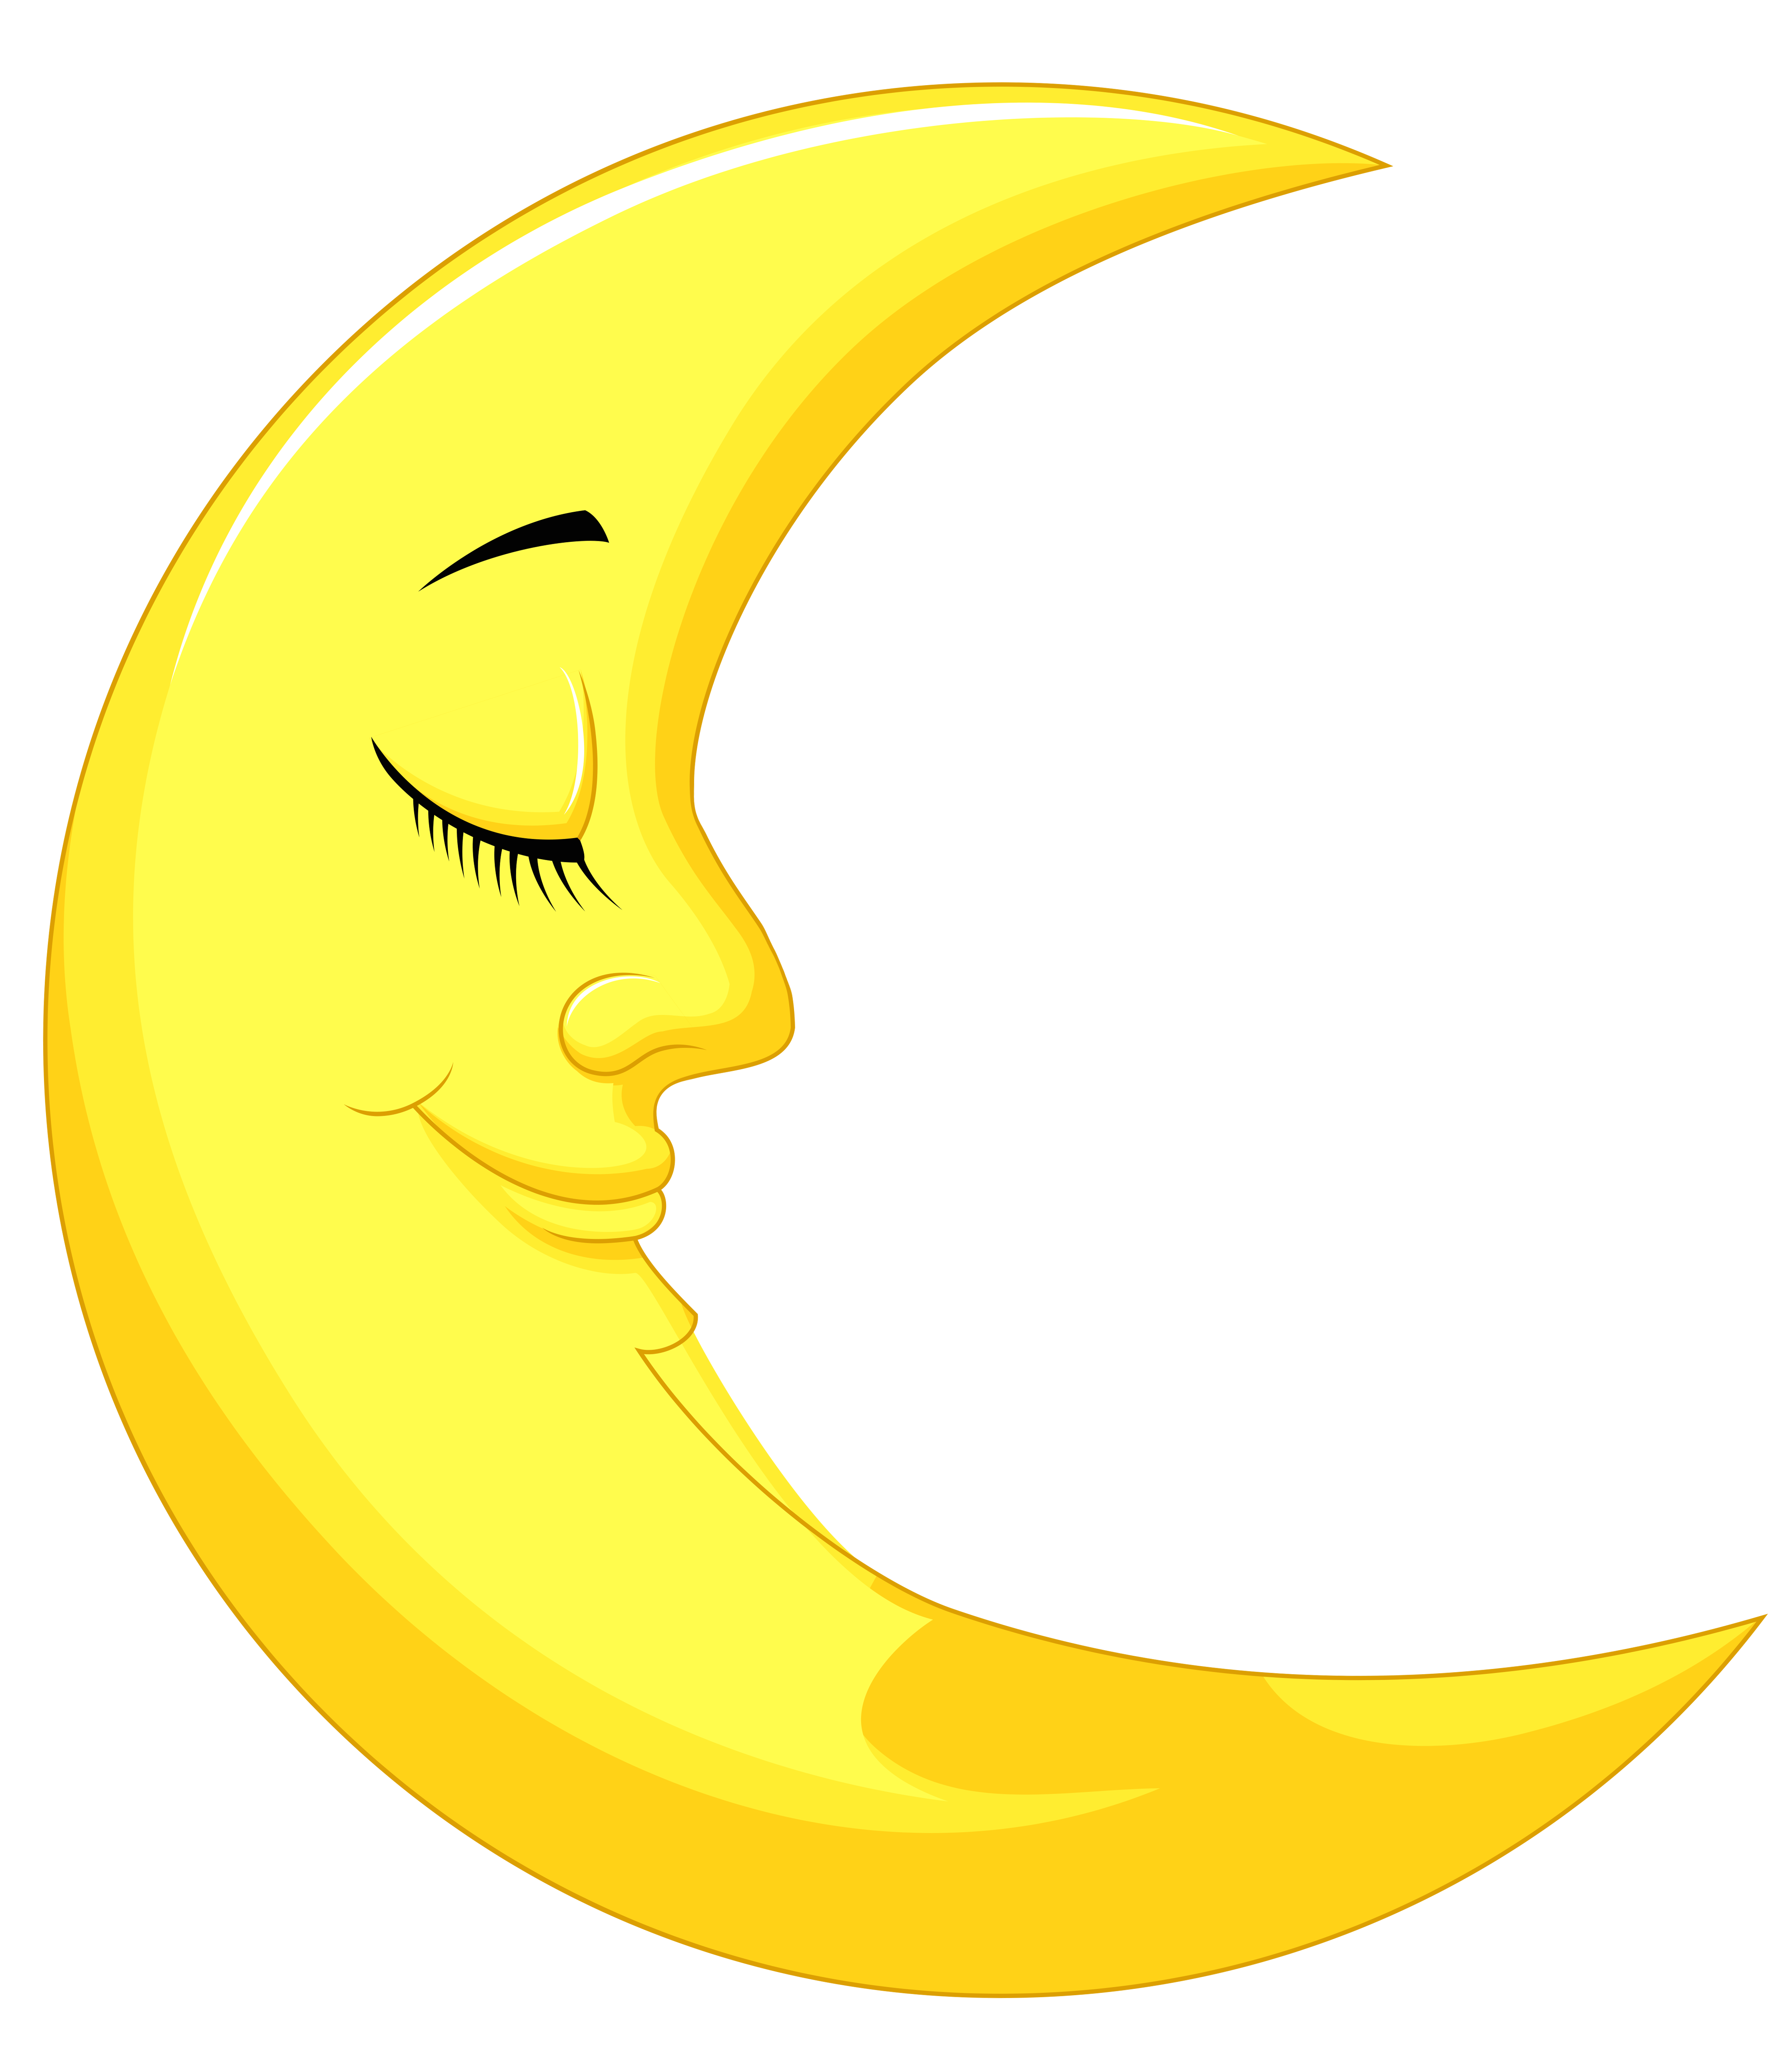 Yellow moon png. Cute clipart picture gallery